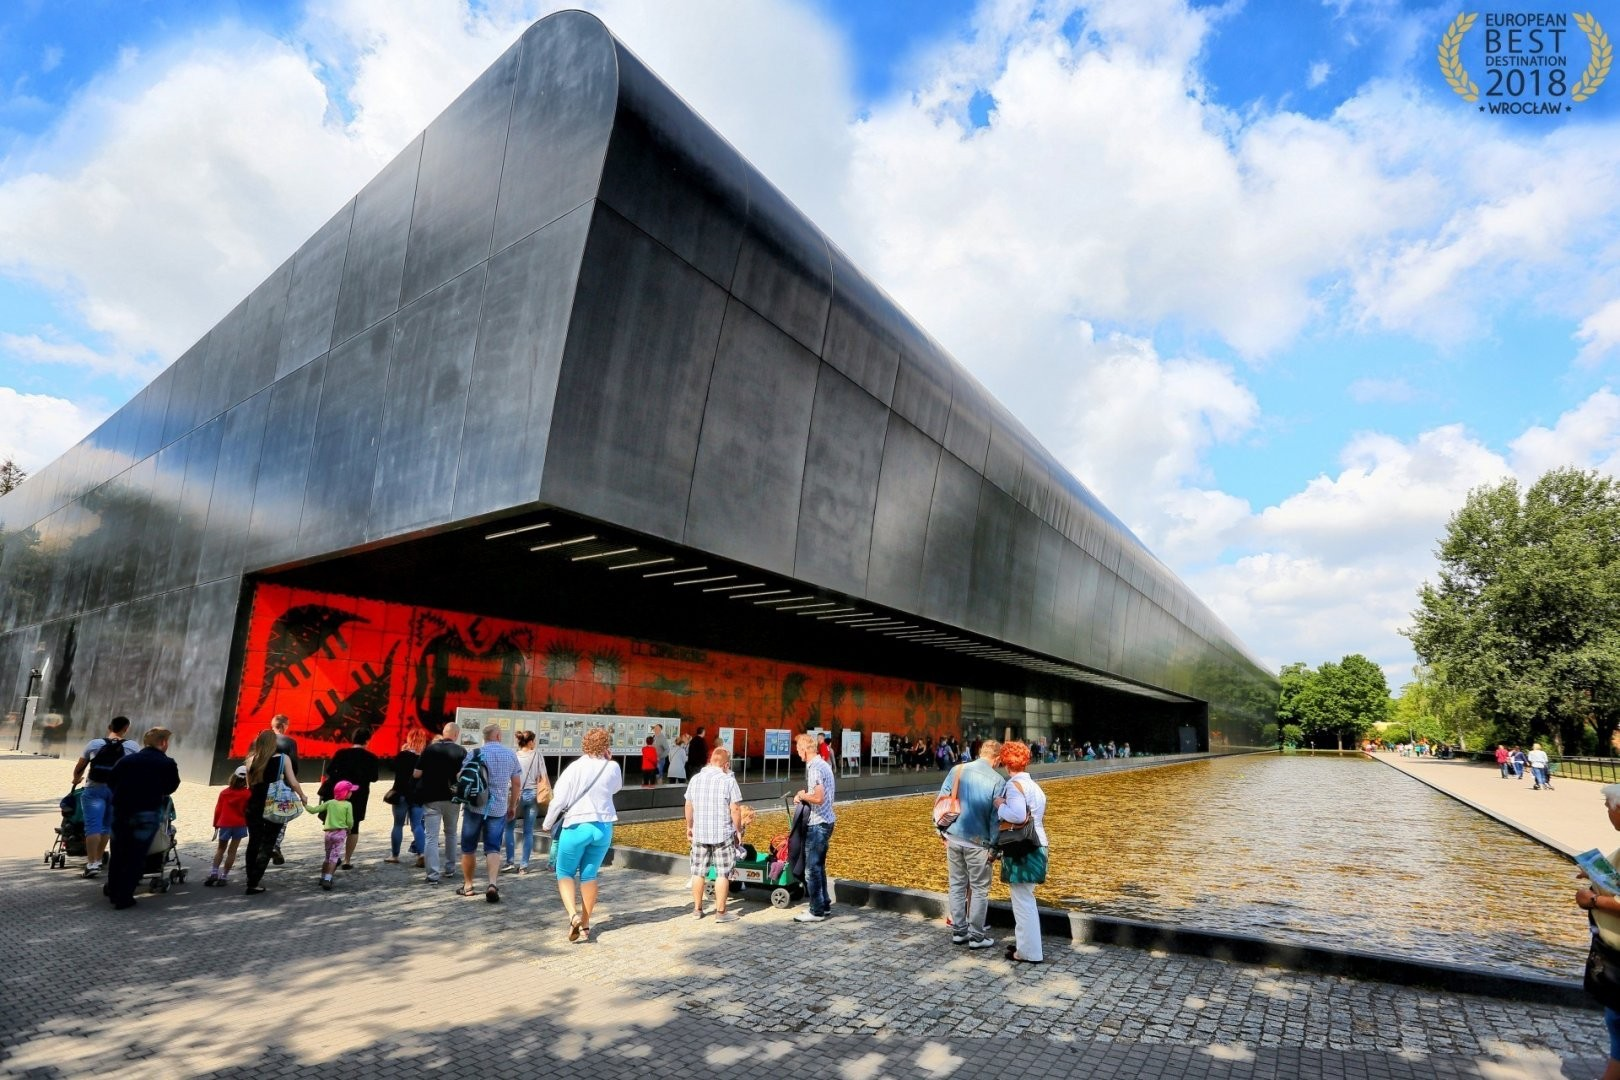 Top 10 new attractions in Poland